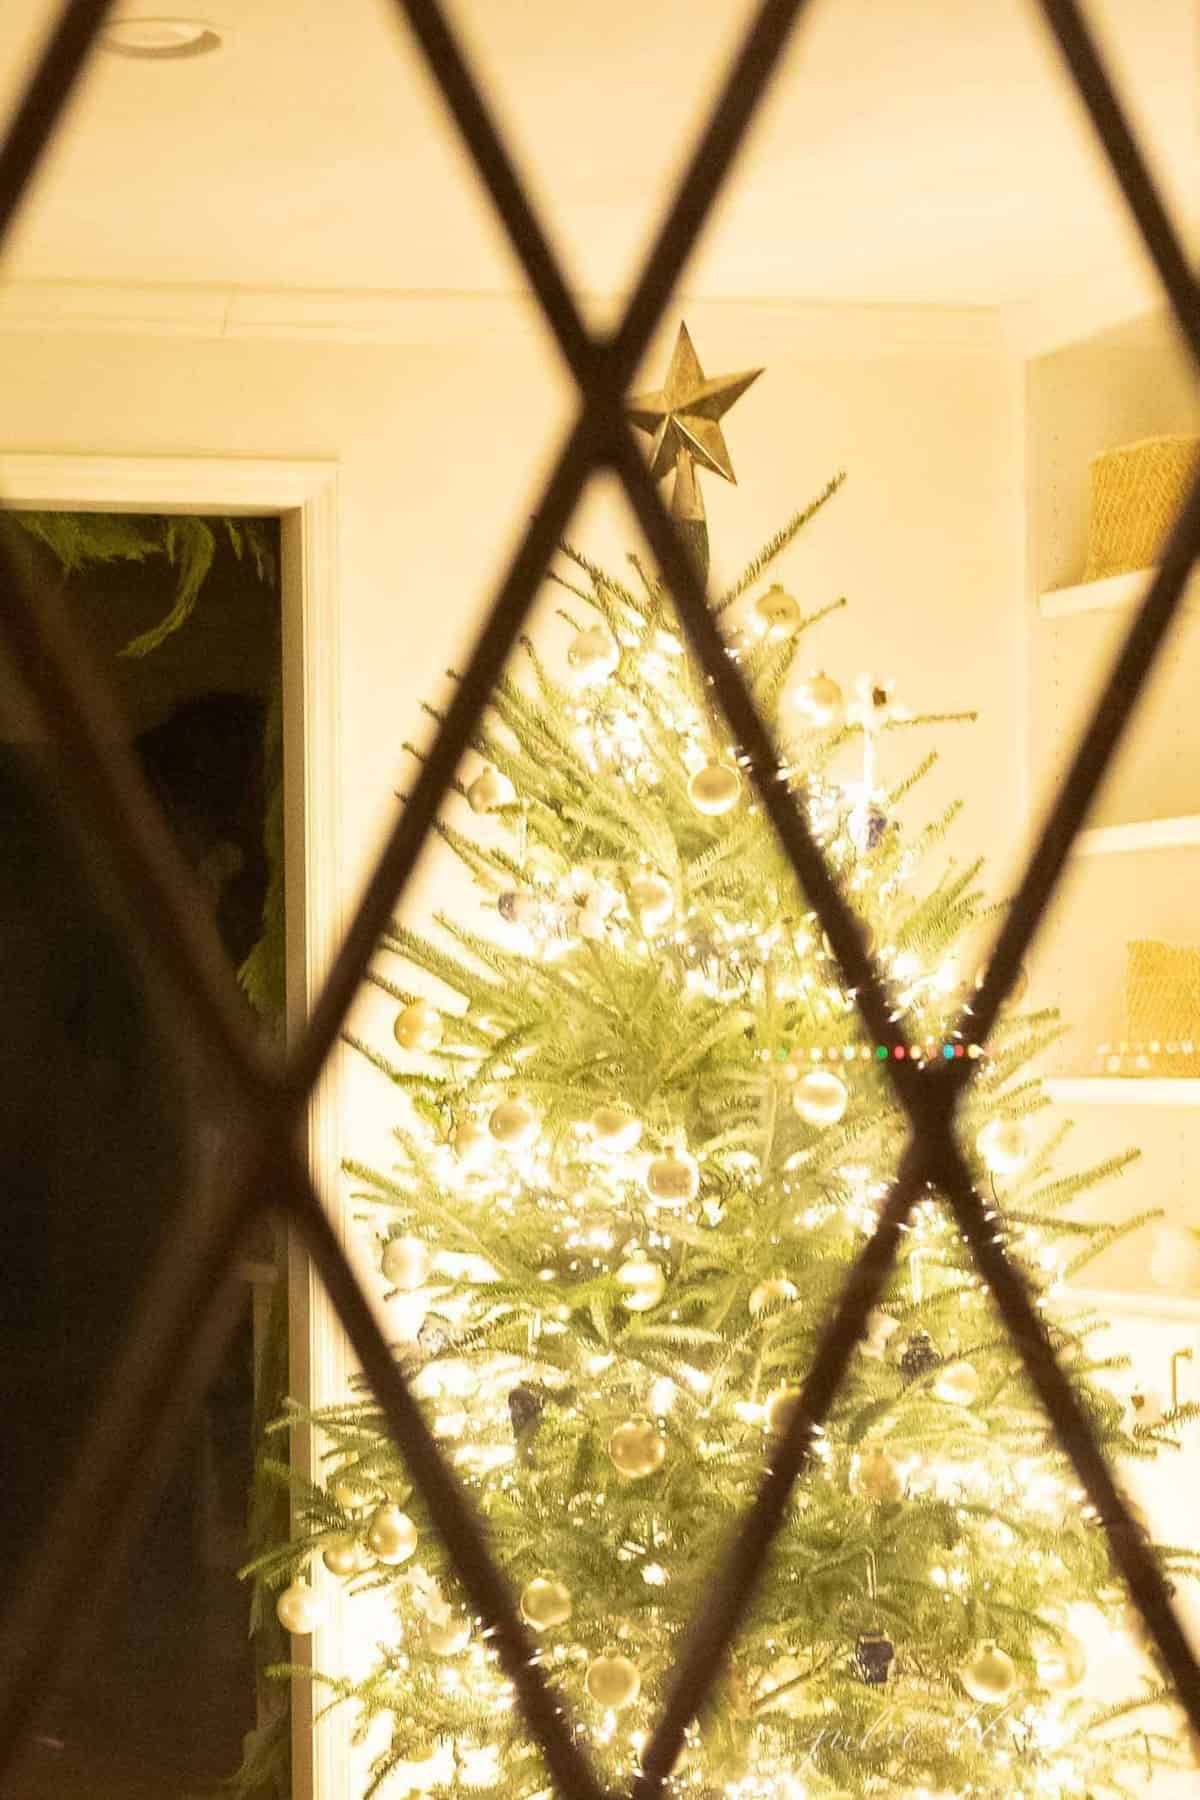 The view of a Christmas Tree from a window.